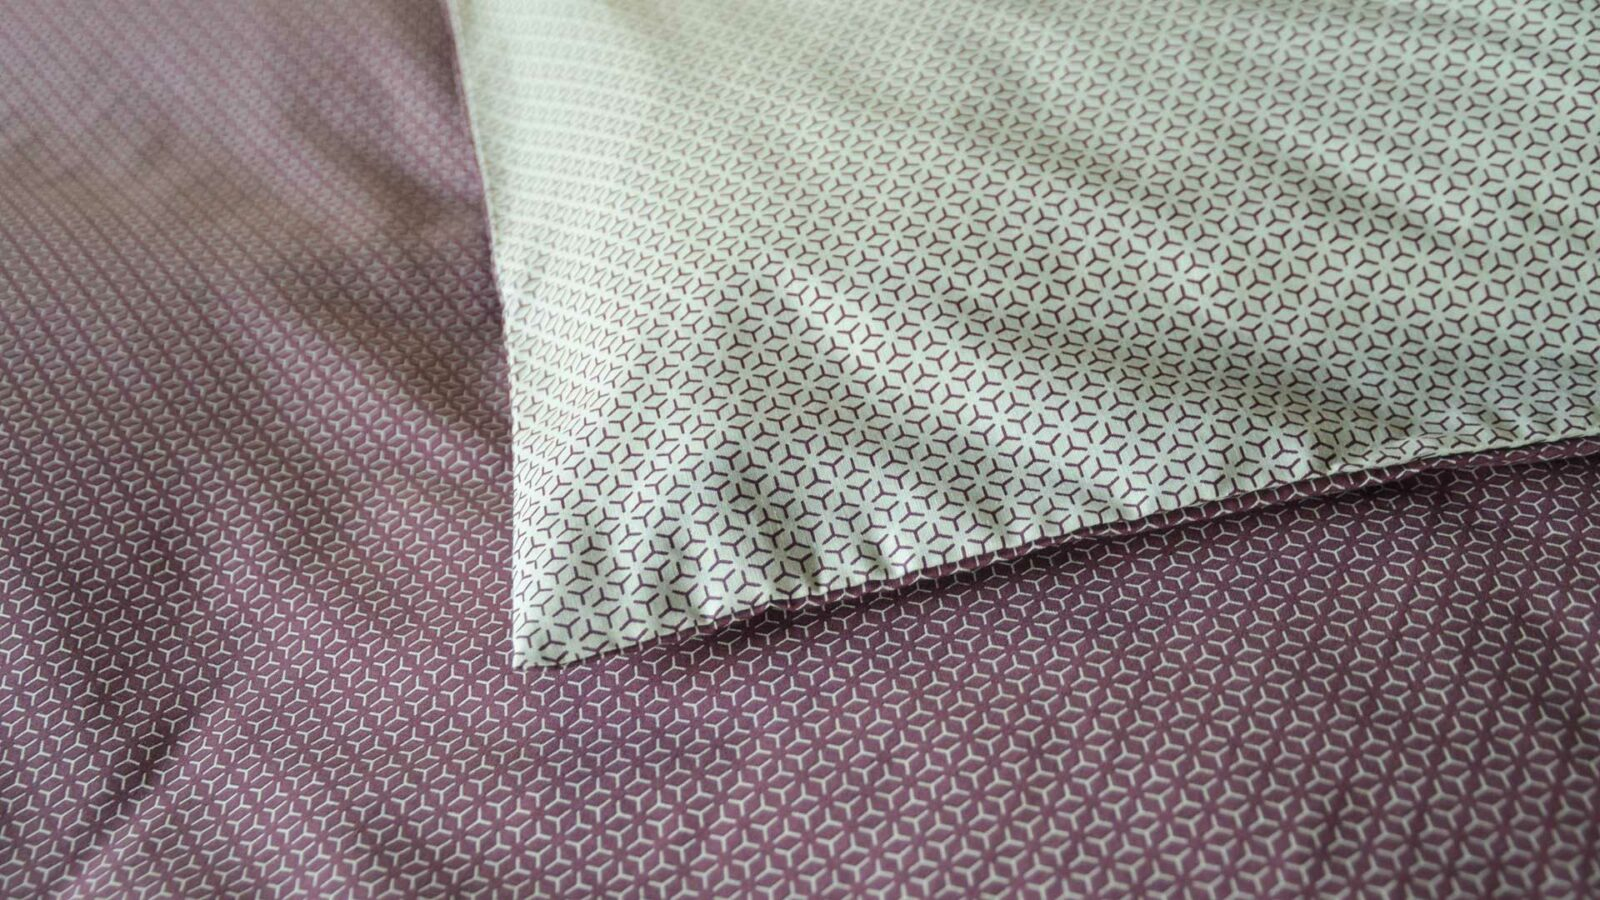 Closer view of the pretty pattern to the mauve and white reversible duvet cover set